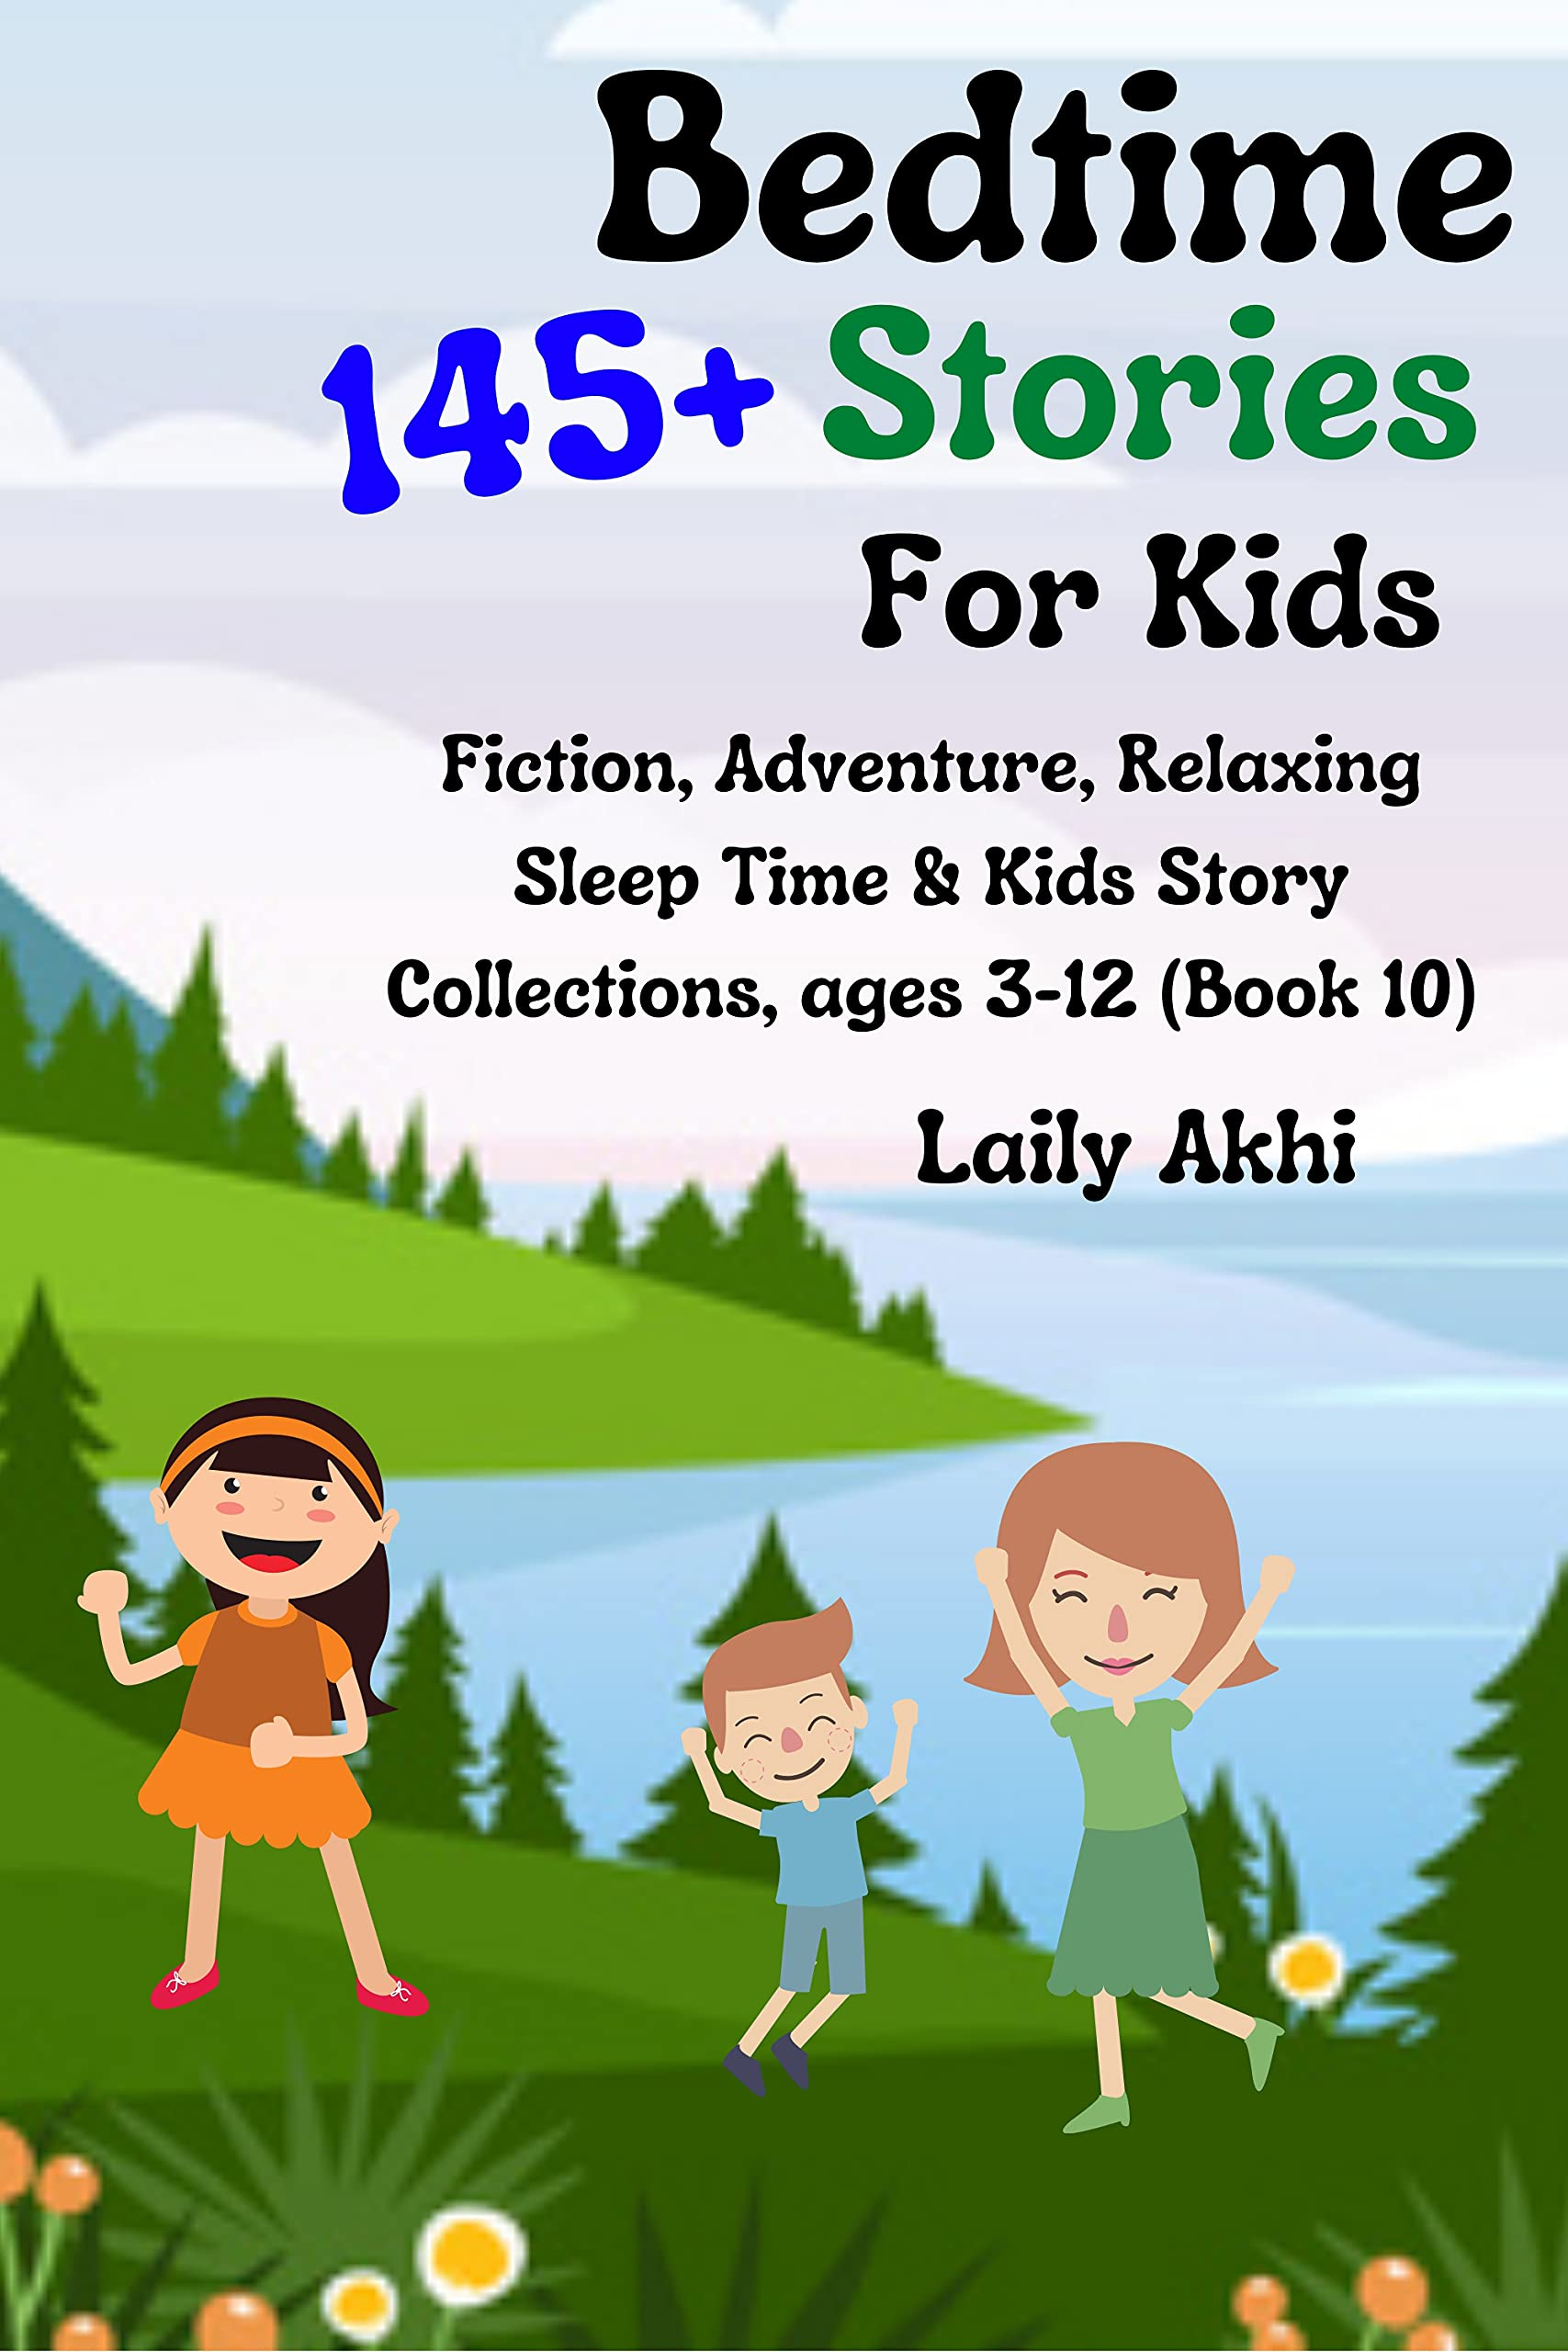 Bedtime Stories For Kids: 145+ Fiction, Adventure, Relaxing Sleep Time & Kids Story Collections, ages 3-12 (Book 10)